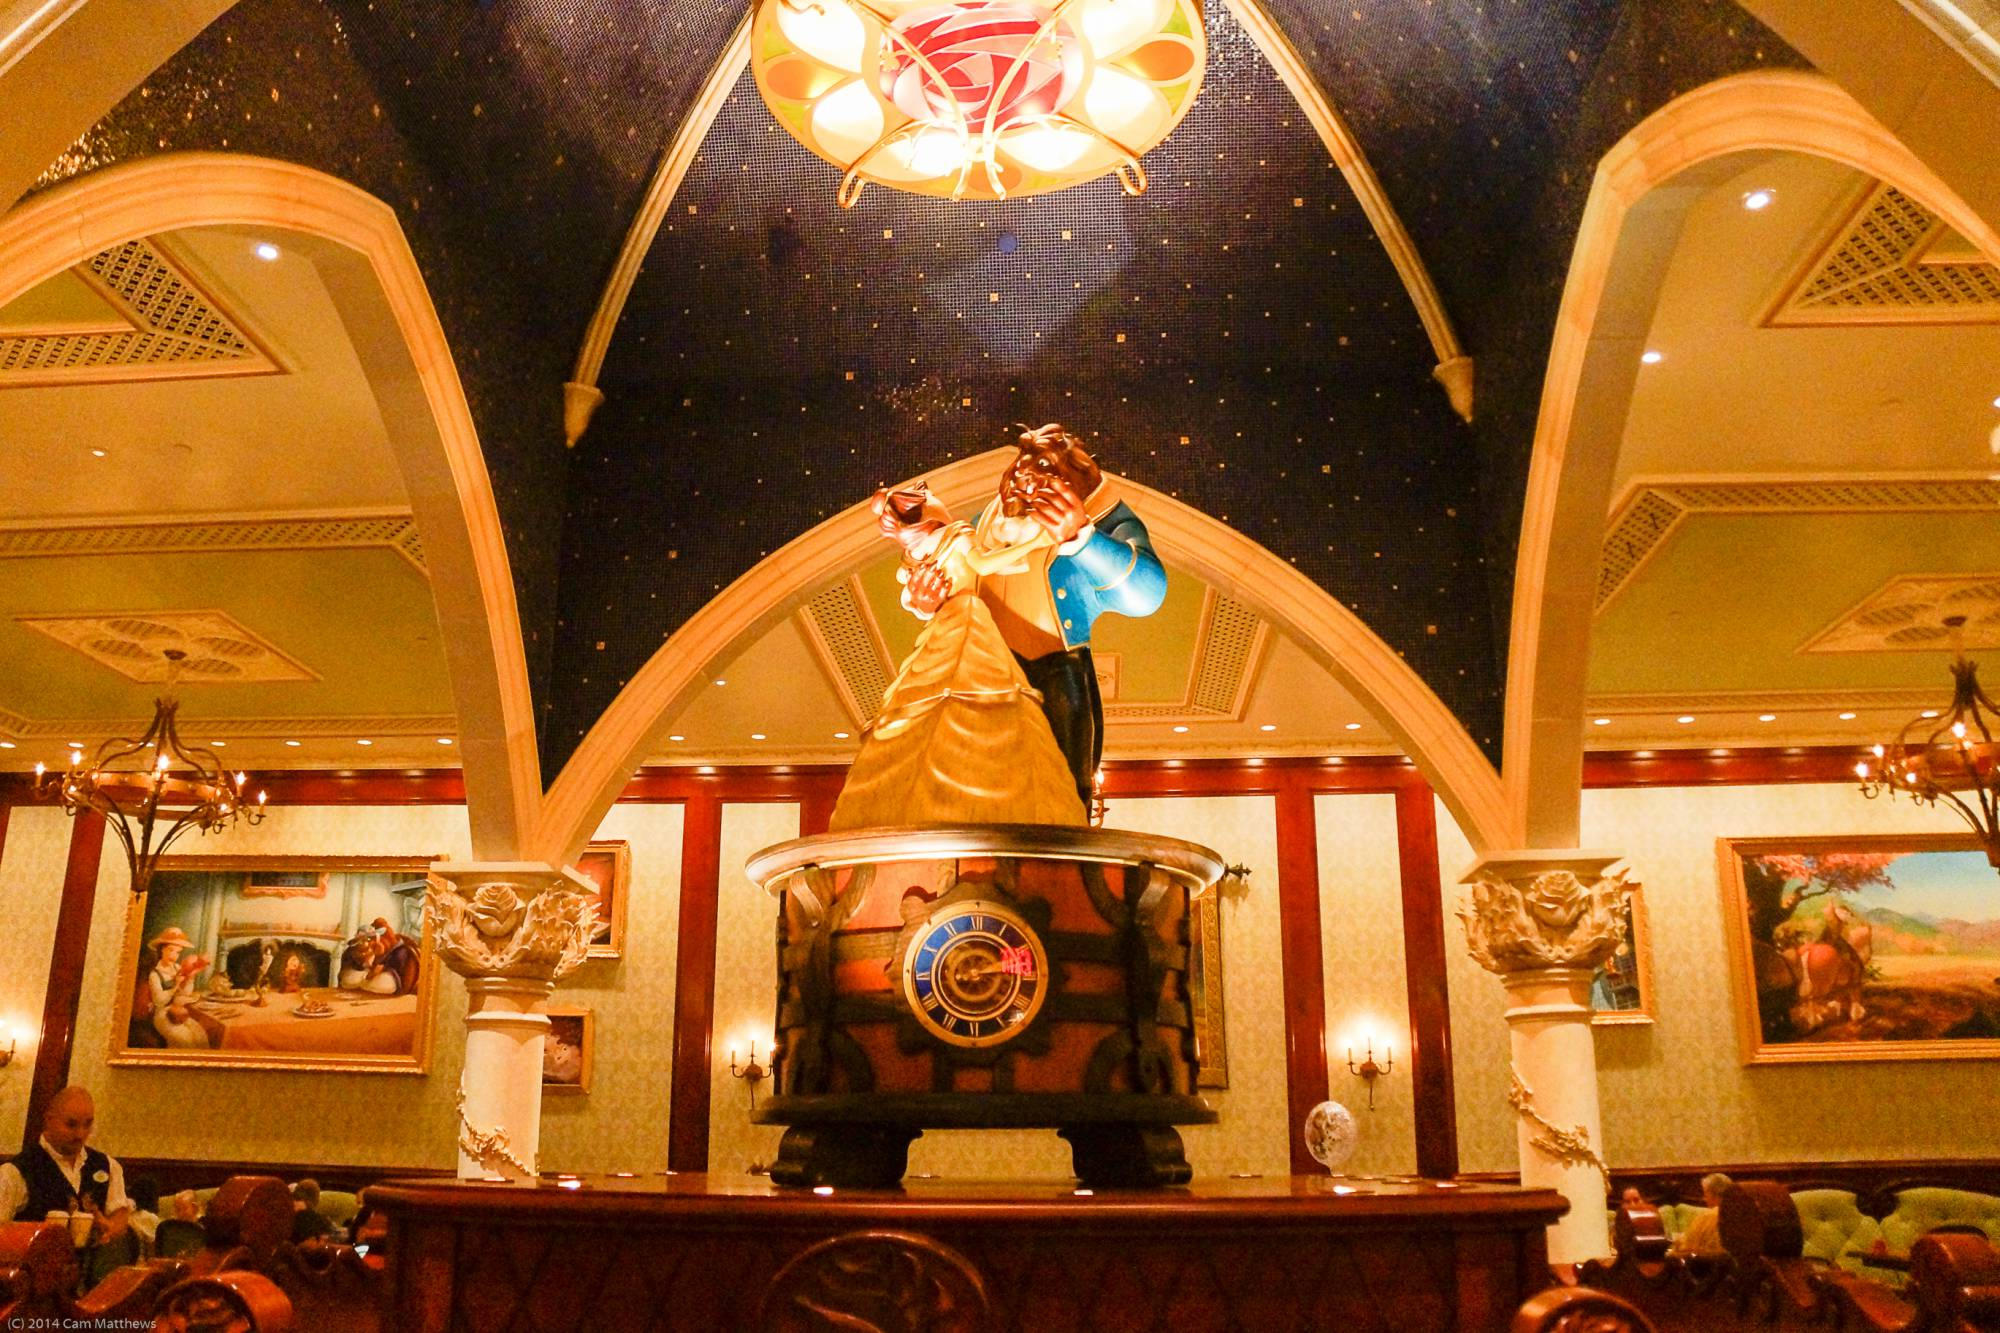 Enjoy le petit dejeuner (breakfast) at Be Our Guest in the Magic Kingdom |PassPorter.com